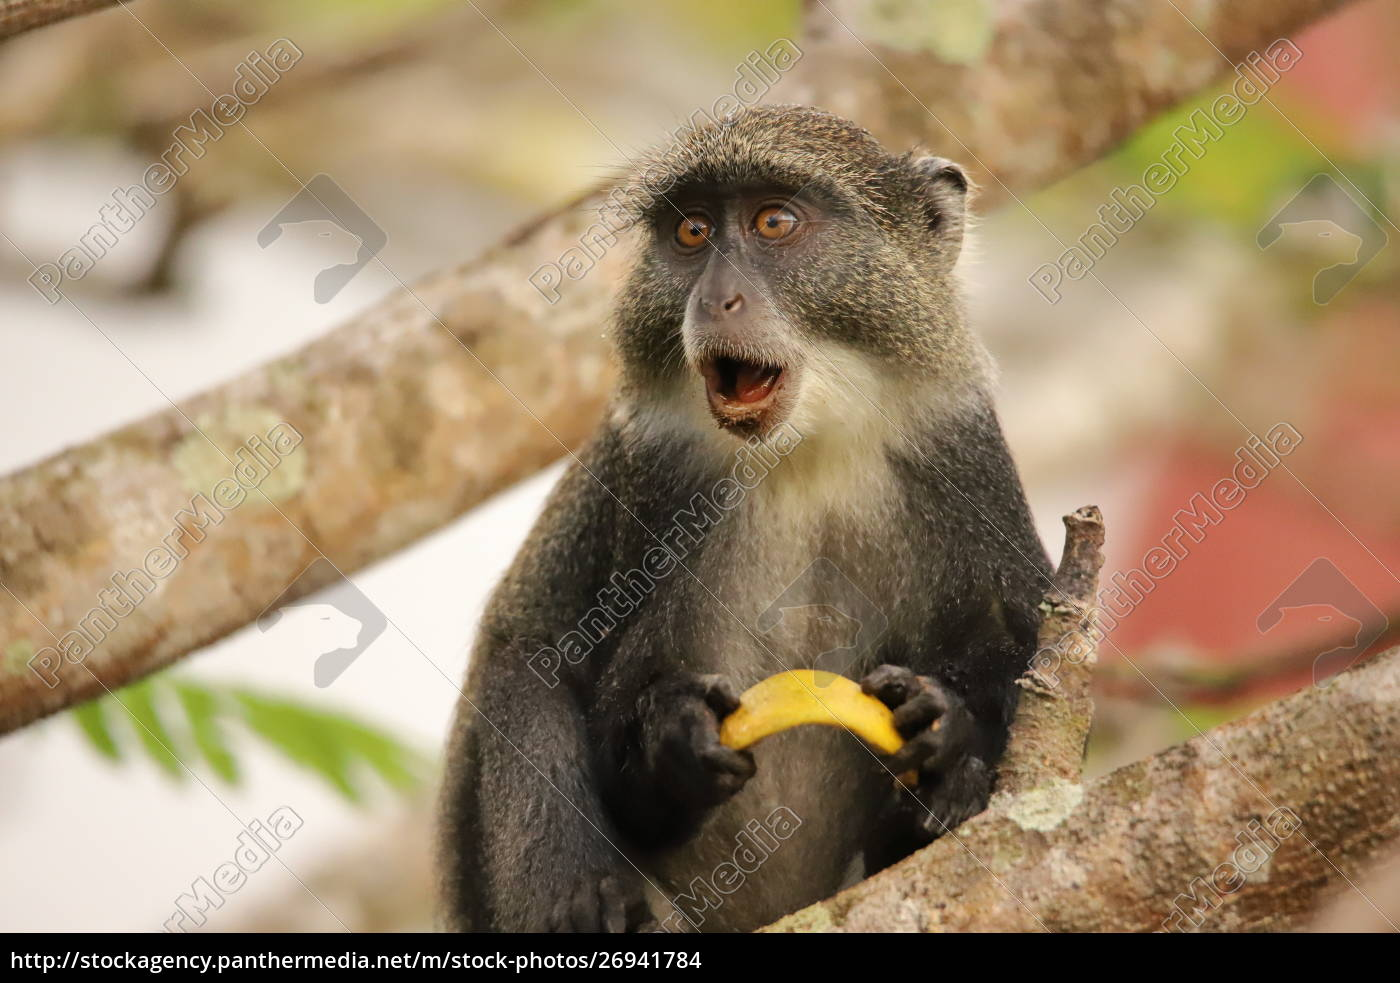 the, sykes, monkey, seems, to, be - 26941784